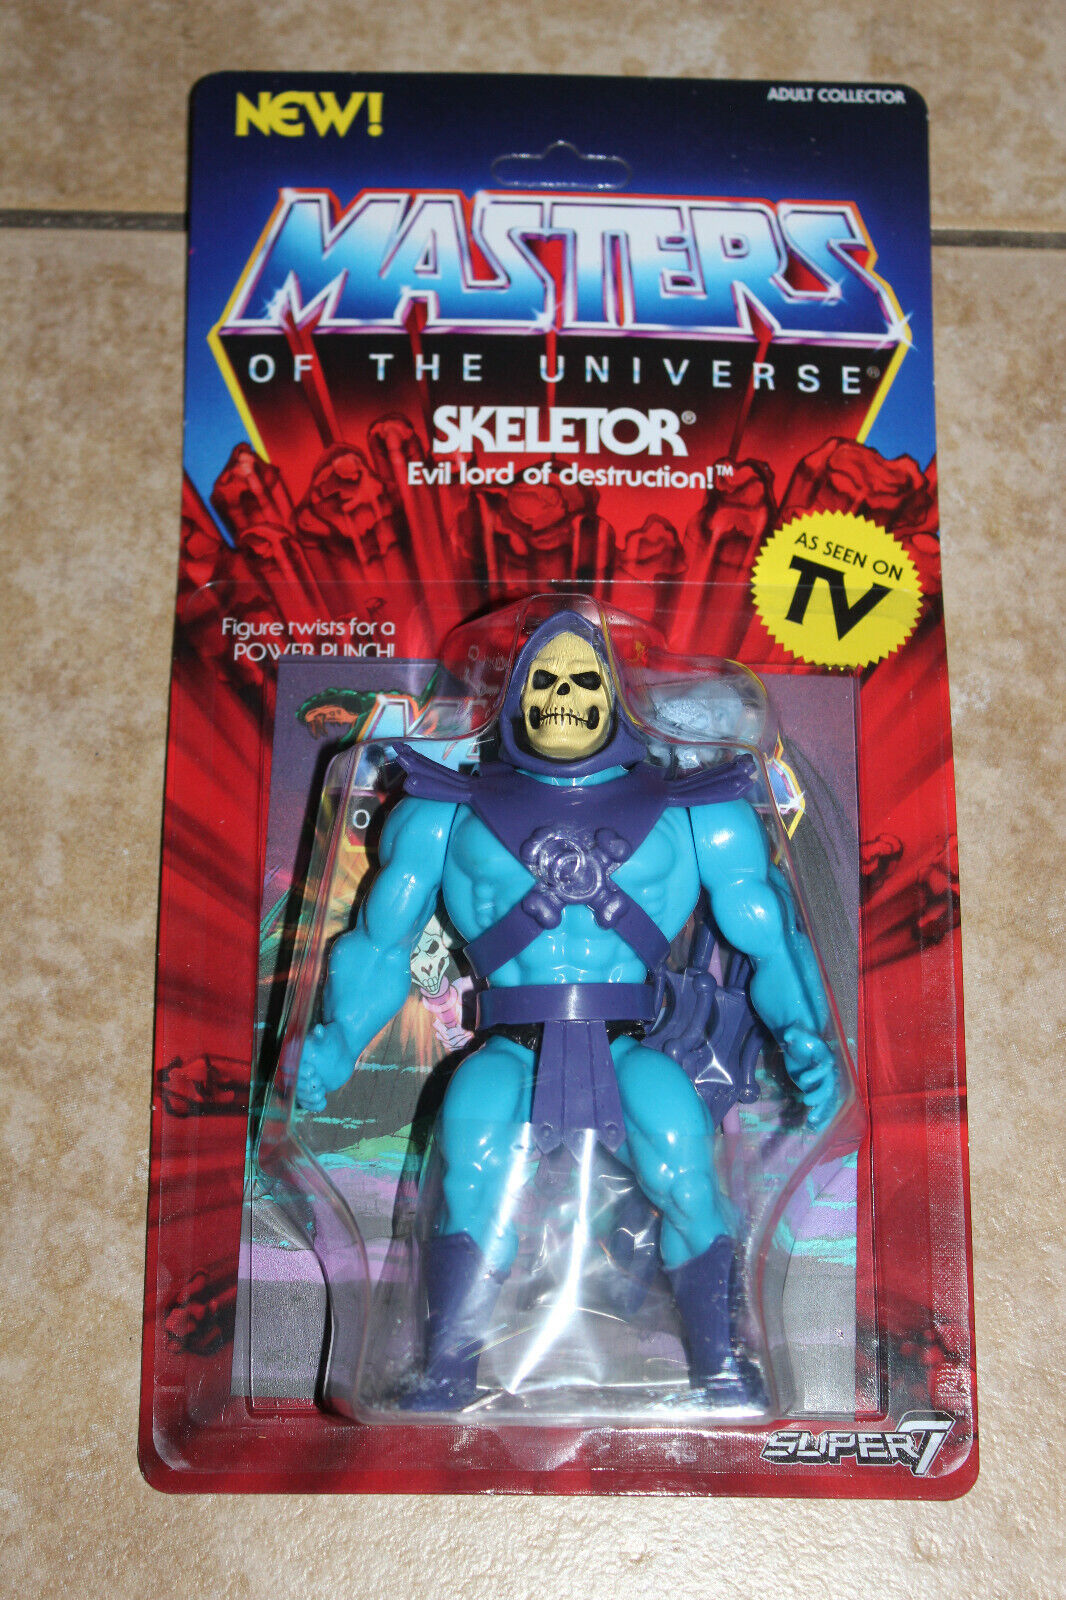 MOTU MASTERS OF THE UNIVERSE VINTAGE SERIES SUPER 7 EXCLUSIVE SKELETOR FIGURE